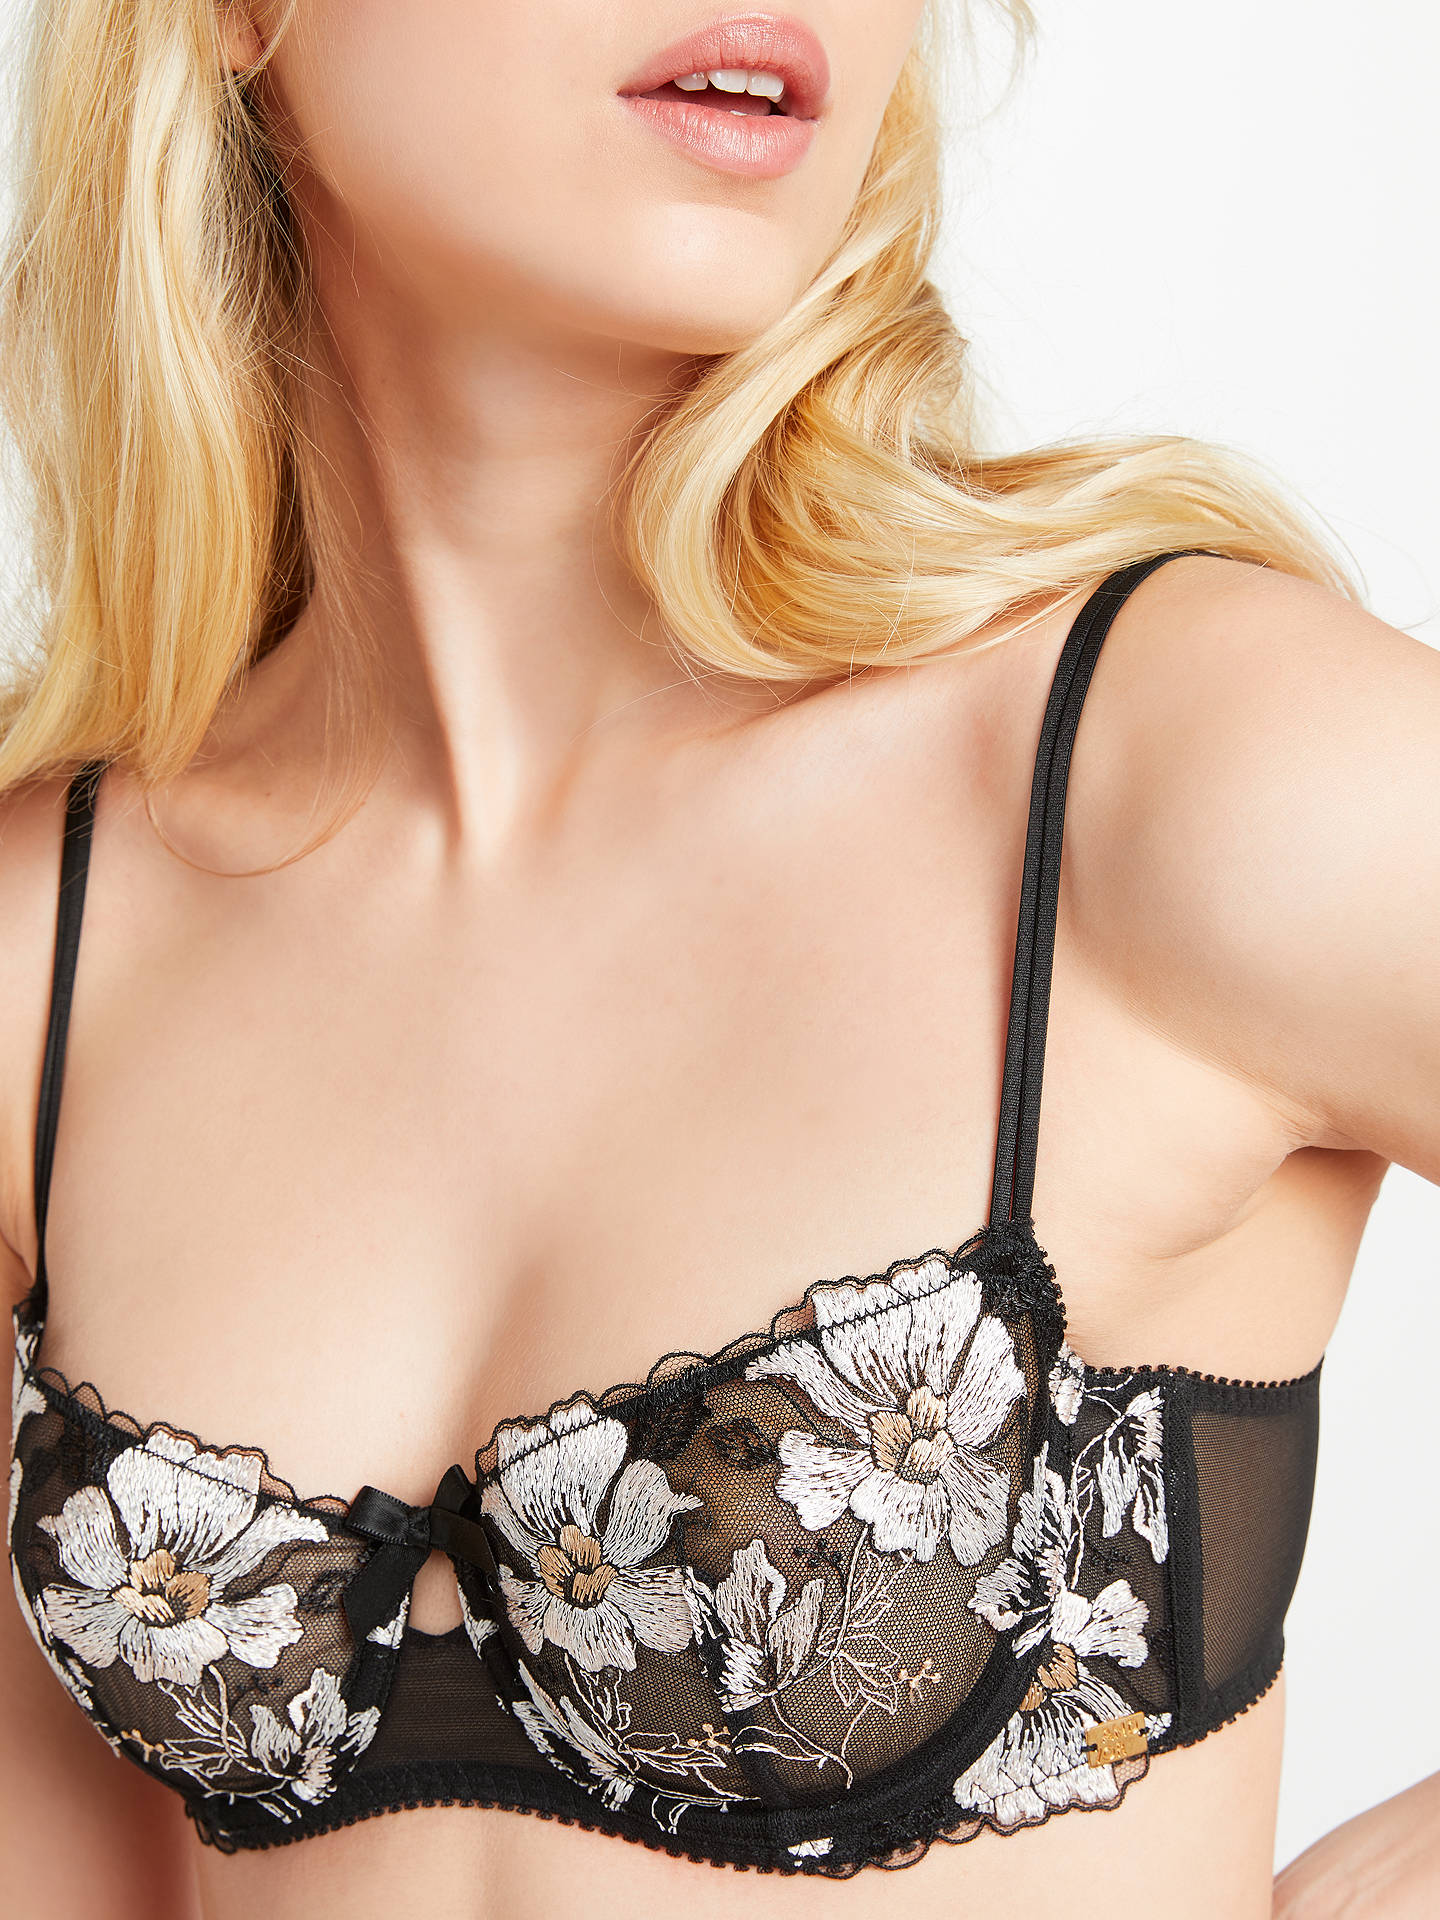 BuyAND/OR Harper Embroidered Demi Bra, Black/Multi, 32B Online at johnlewis.com